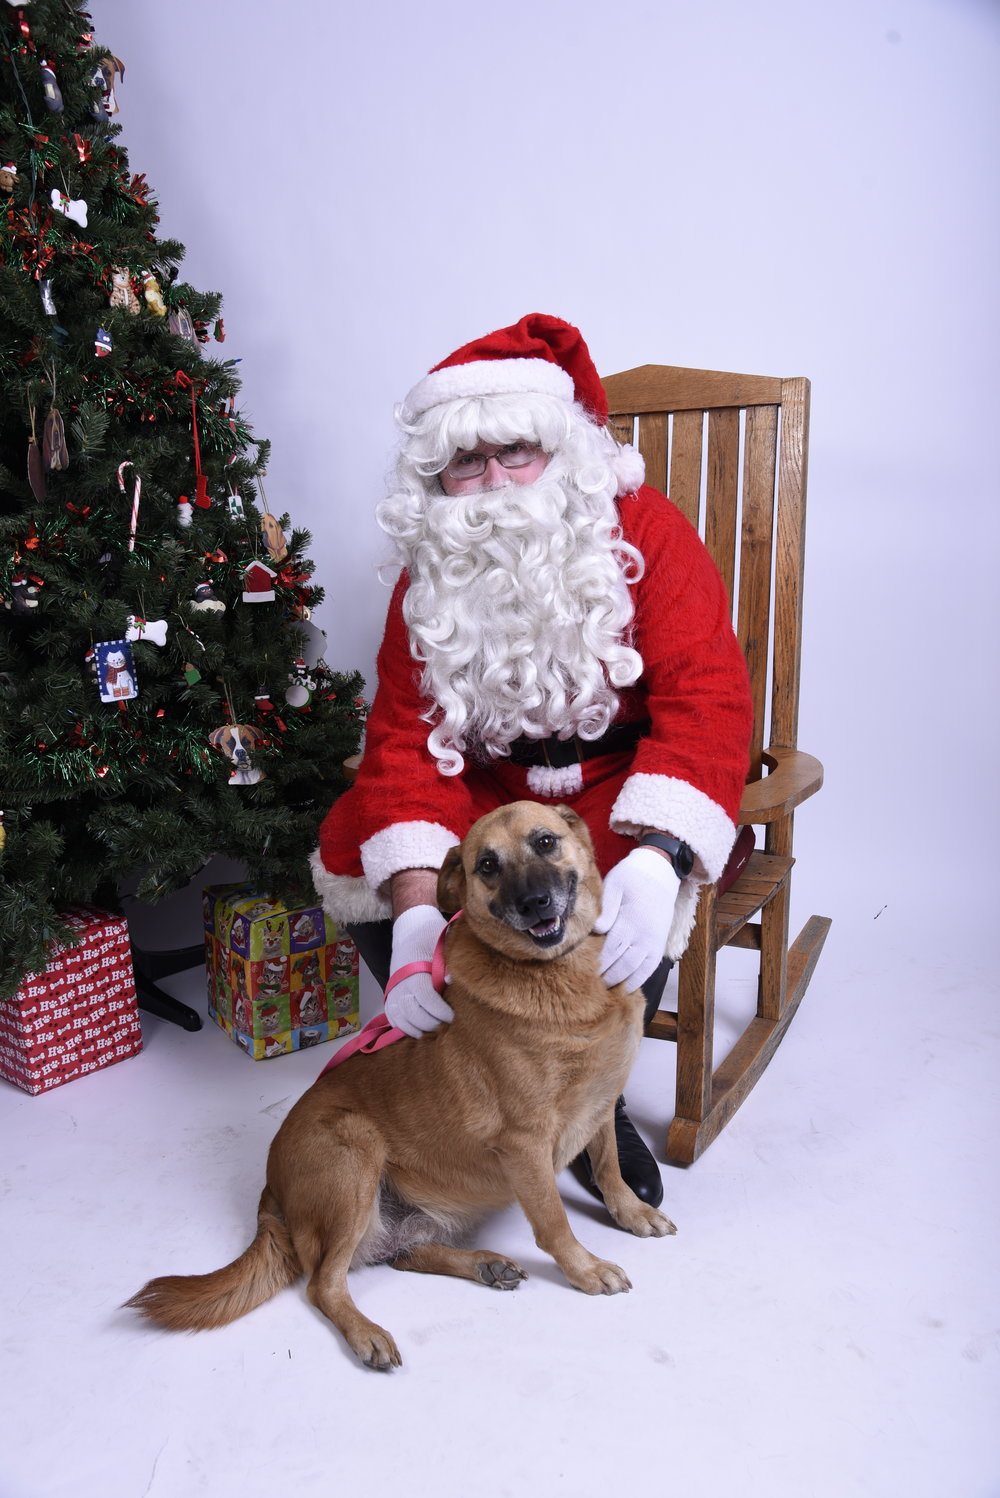 PICS WITH SANTA AND YOUR FAMILY INCLUDING FURKIDS DECEMBER 16TH FROM 2PM TO 4PM AT KNOX-WHITLEY ANIMAL SHELTER $10 DONATION GETS EITHER AN 8X10 OR 2 5X7's Snacks and punch provided.